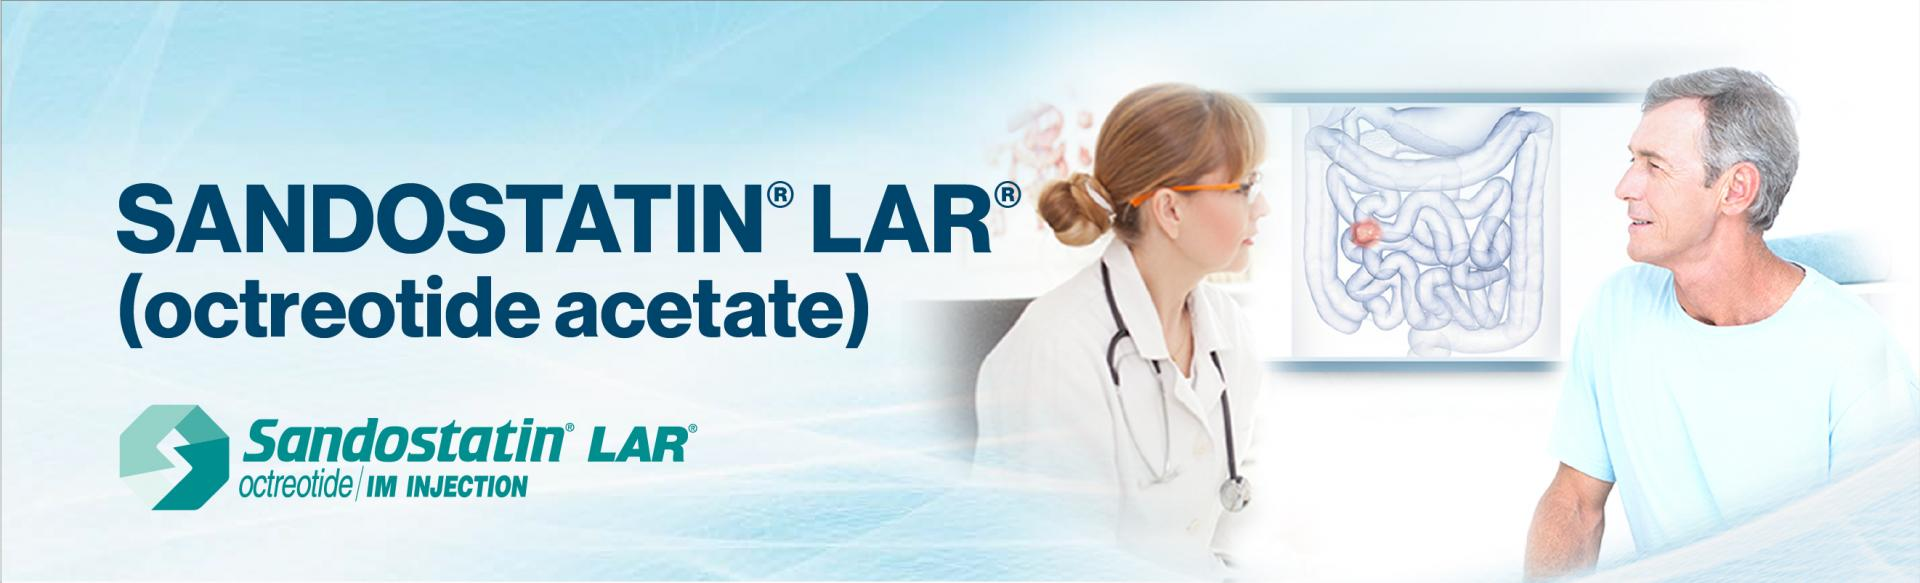 """Top banner: Image of a doctor and patient facing each other, with a picture of the human intenstines on the wall behind them. Superimposed on top of the image is the drug name,  """"Sandostatin LAR octreotide acetate"""""""